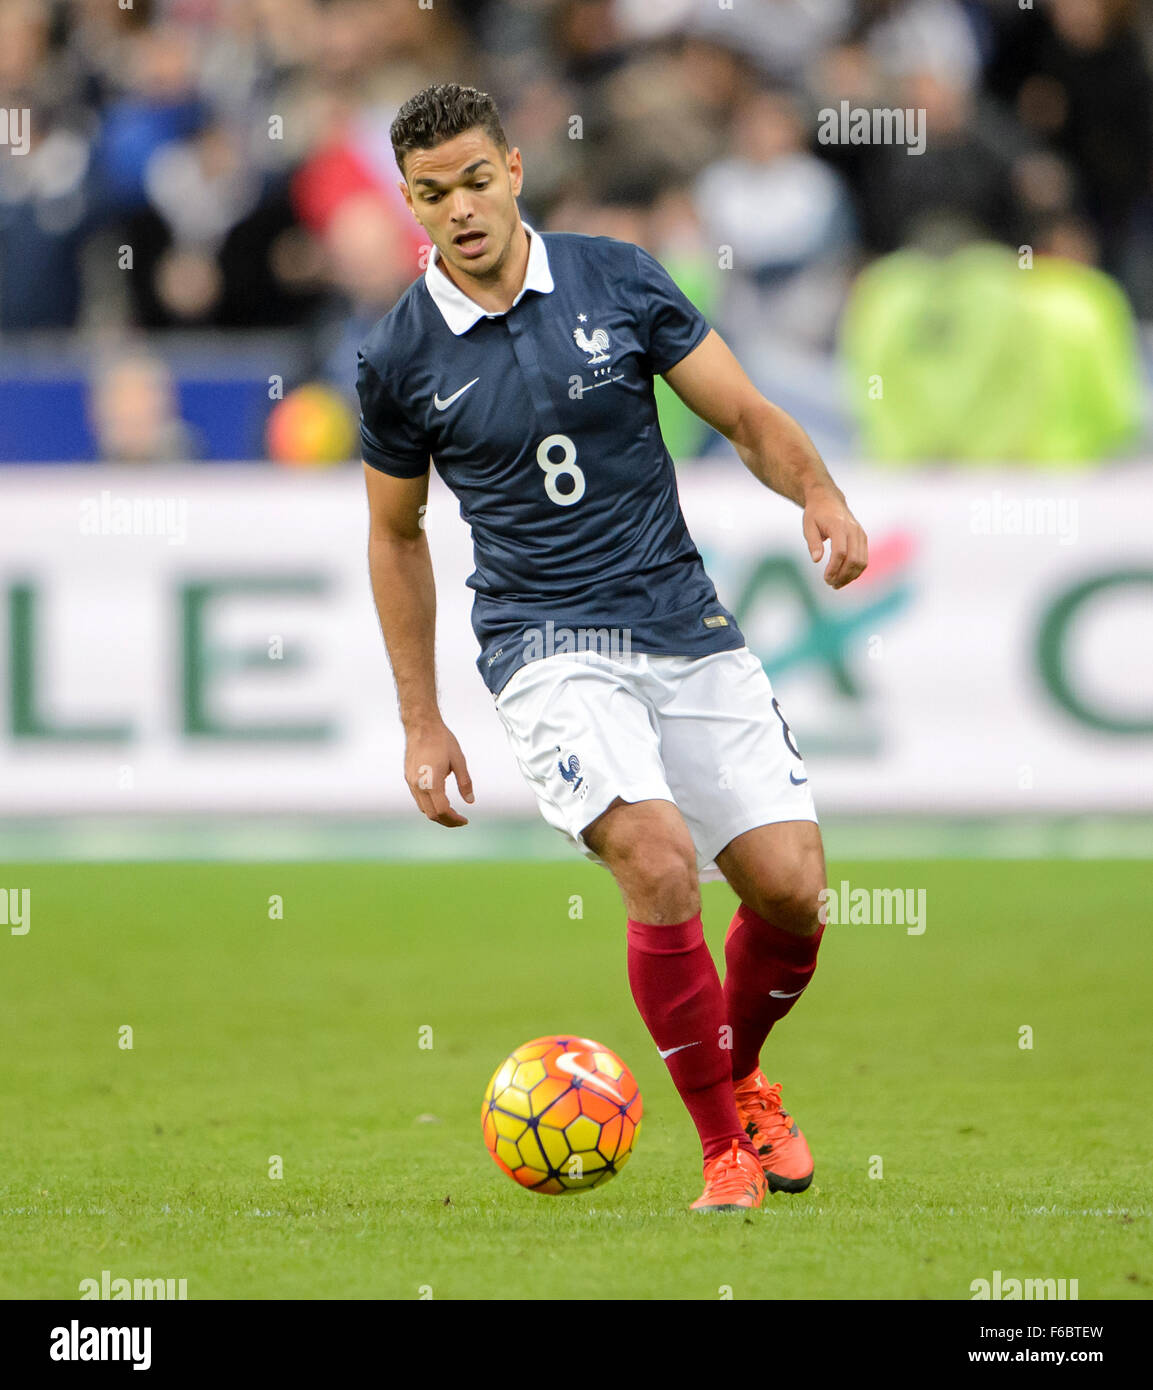 Paris France 13th Nov 2015 France s Hatem Ben Arfa in action